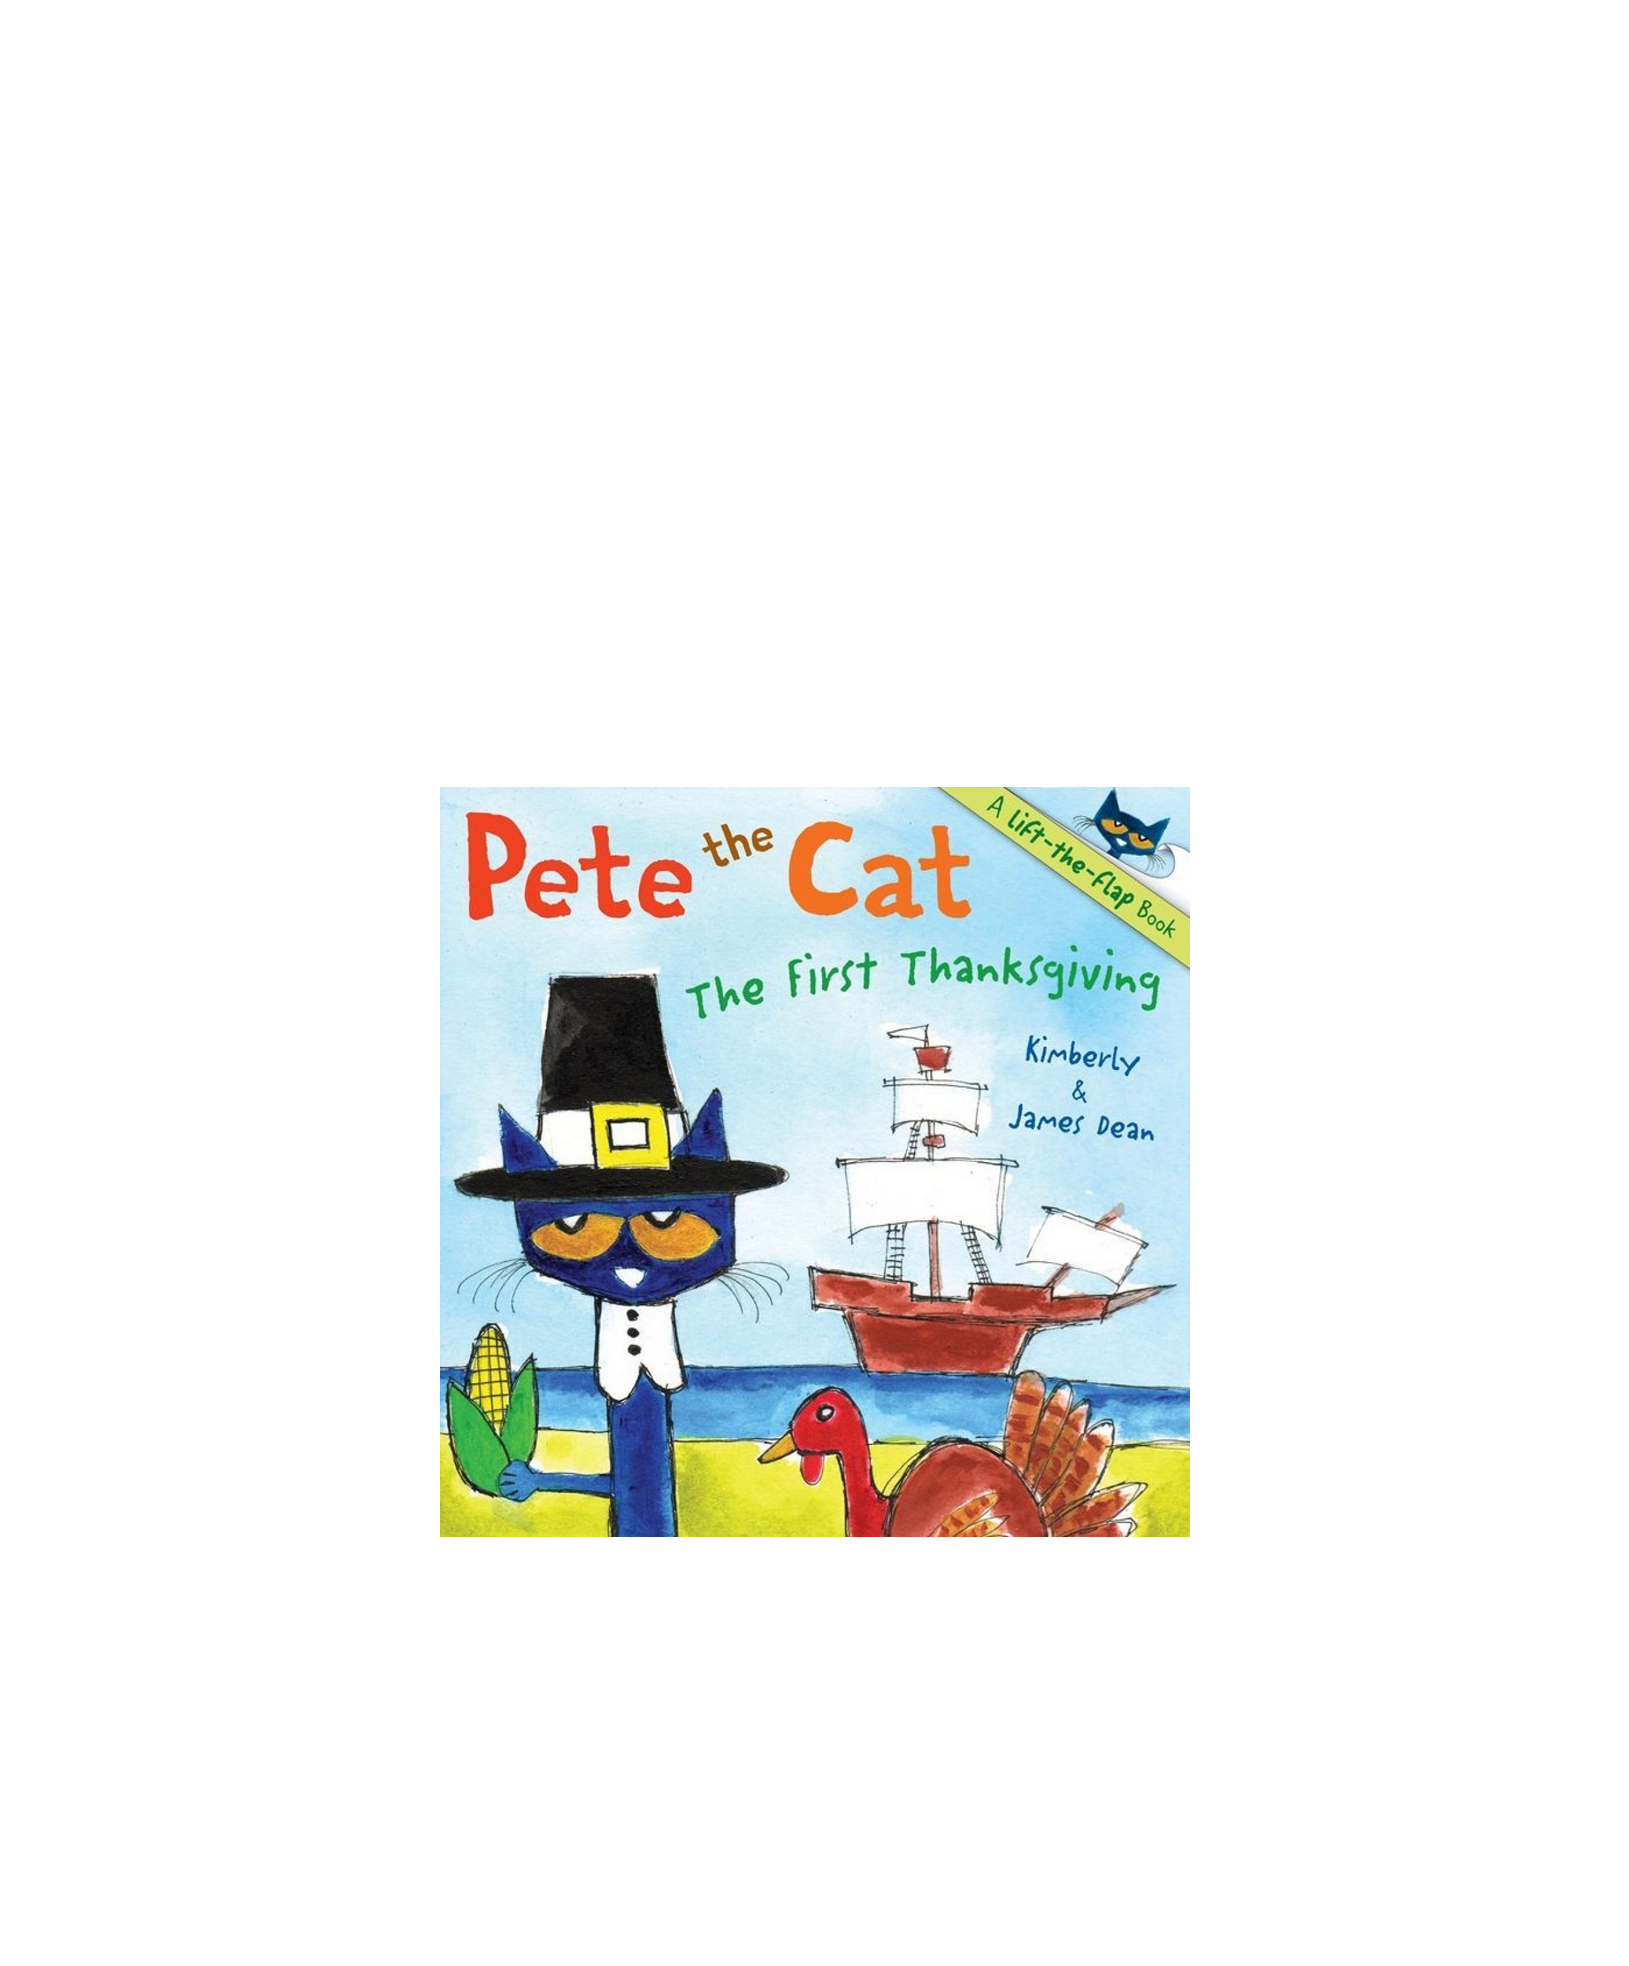 Pete the Cat: The First Thanksgiving by Kimberly and James Dean